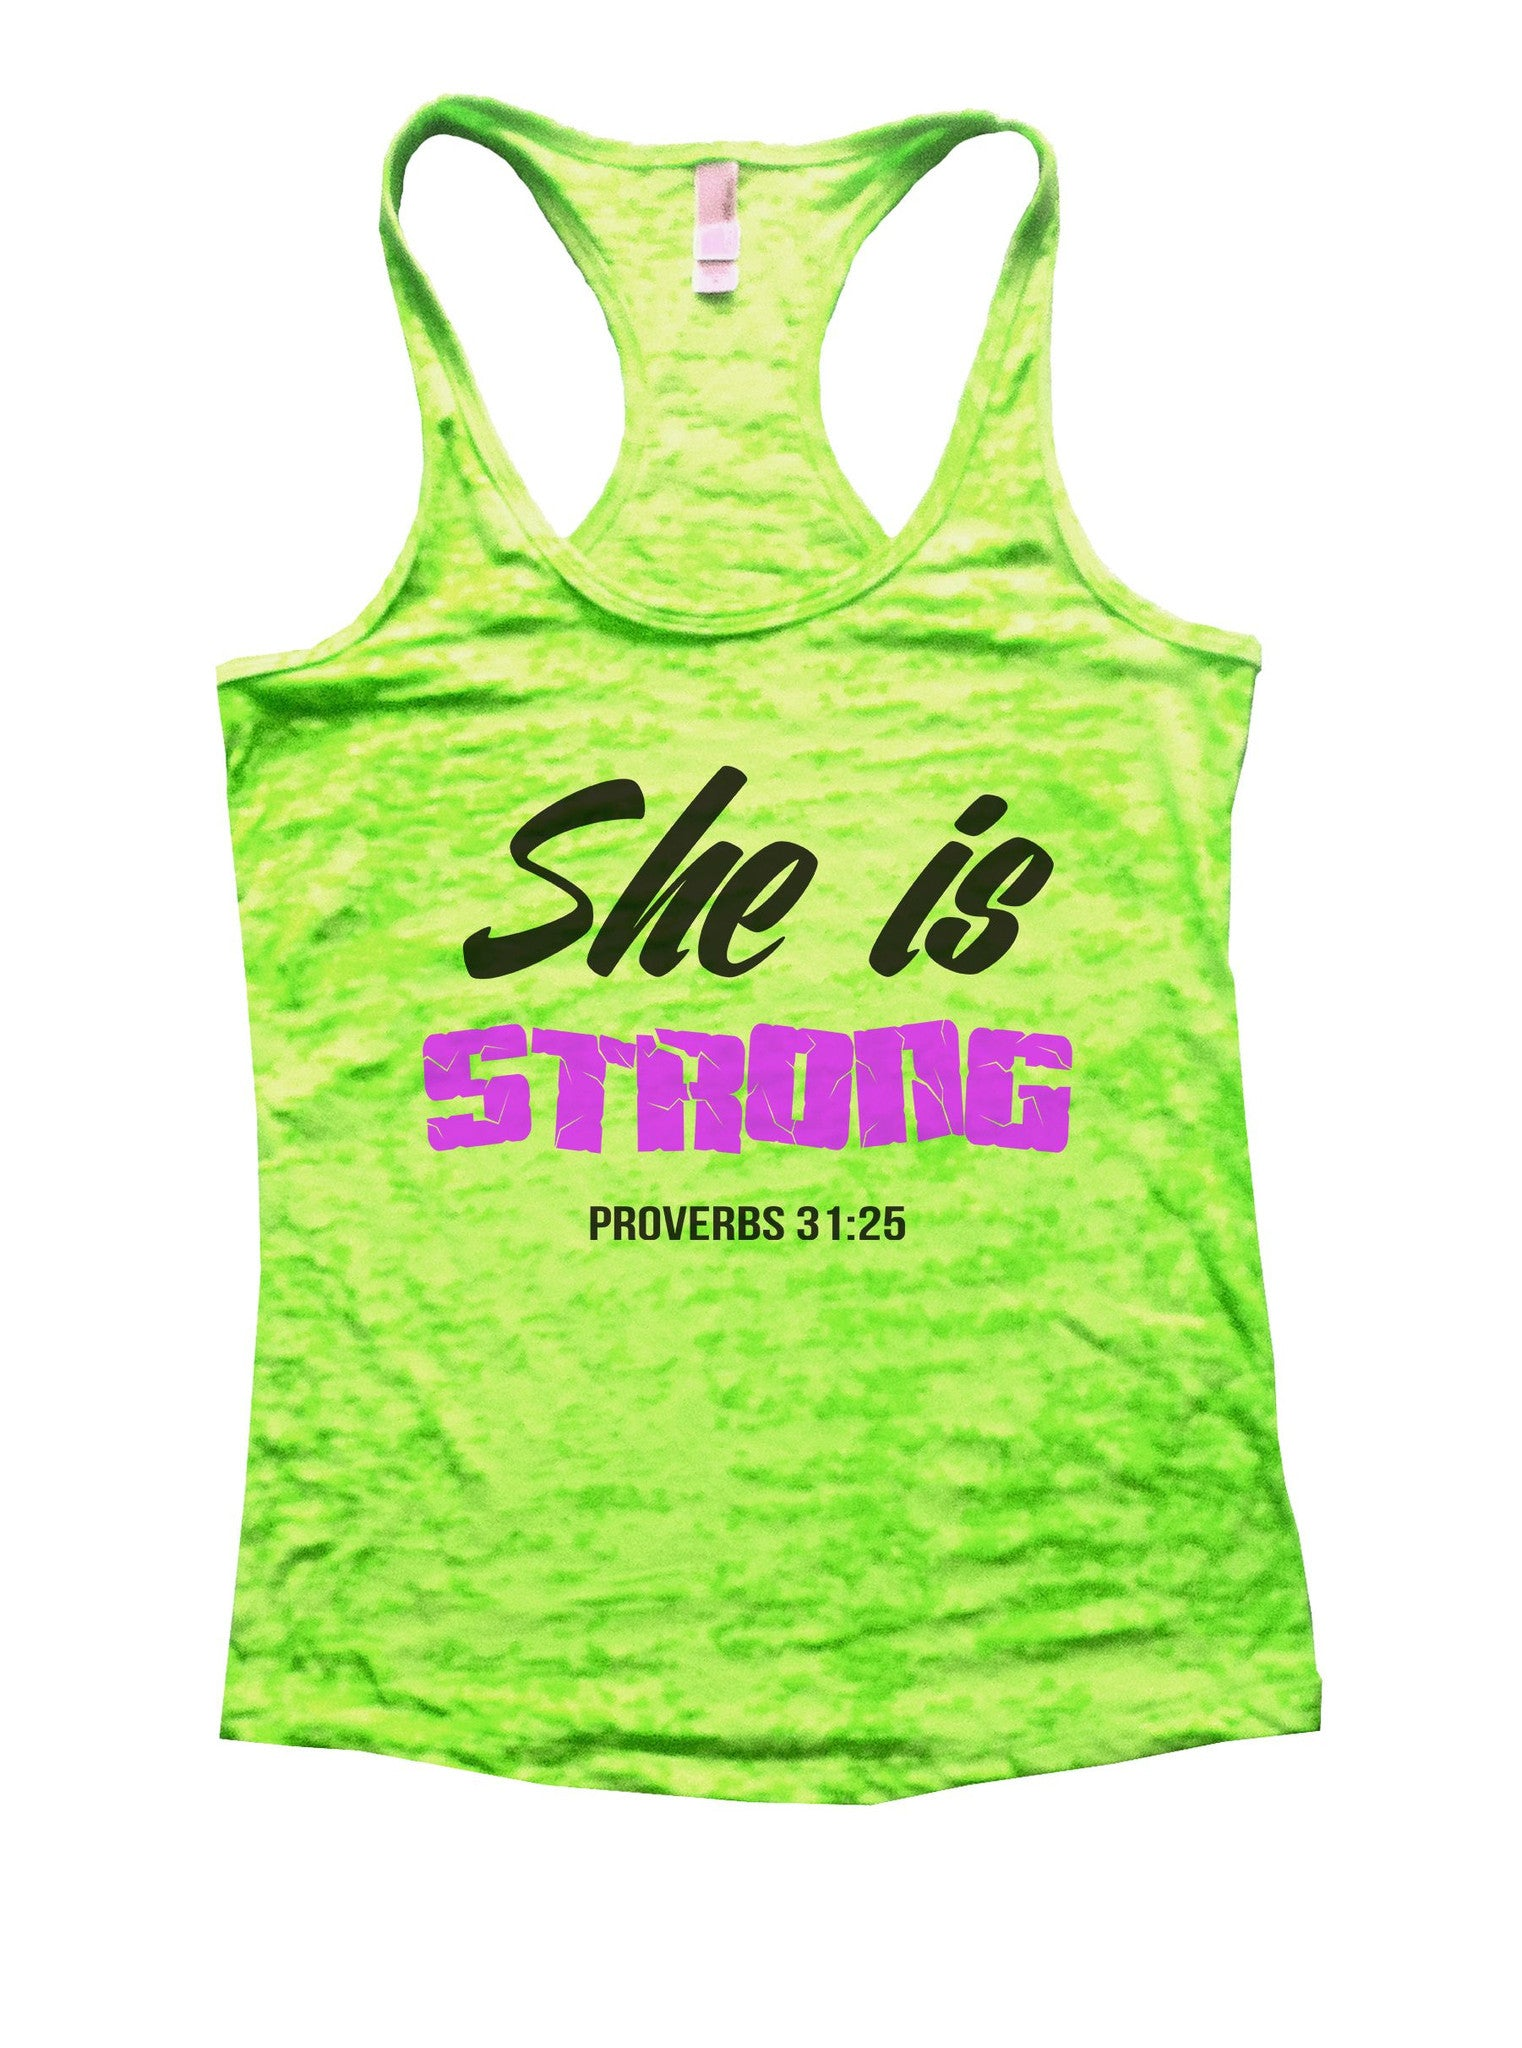 She Is Strong Proverbs 31:25 Burnout Tank Top By BurnoutTankTops com - 859